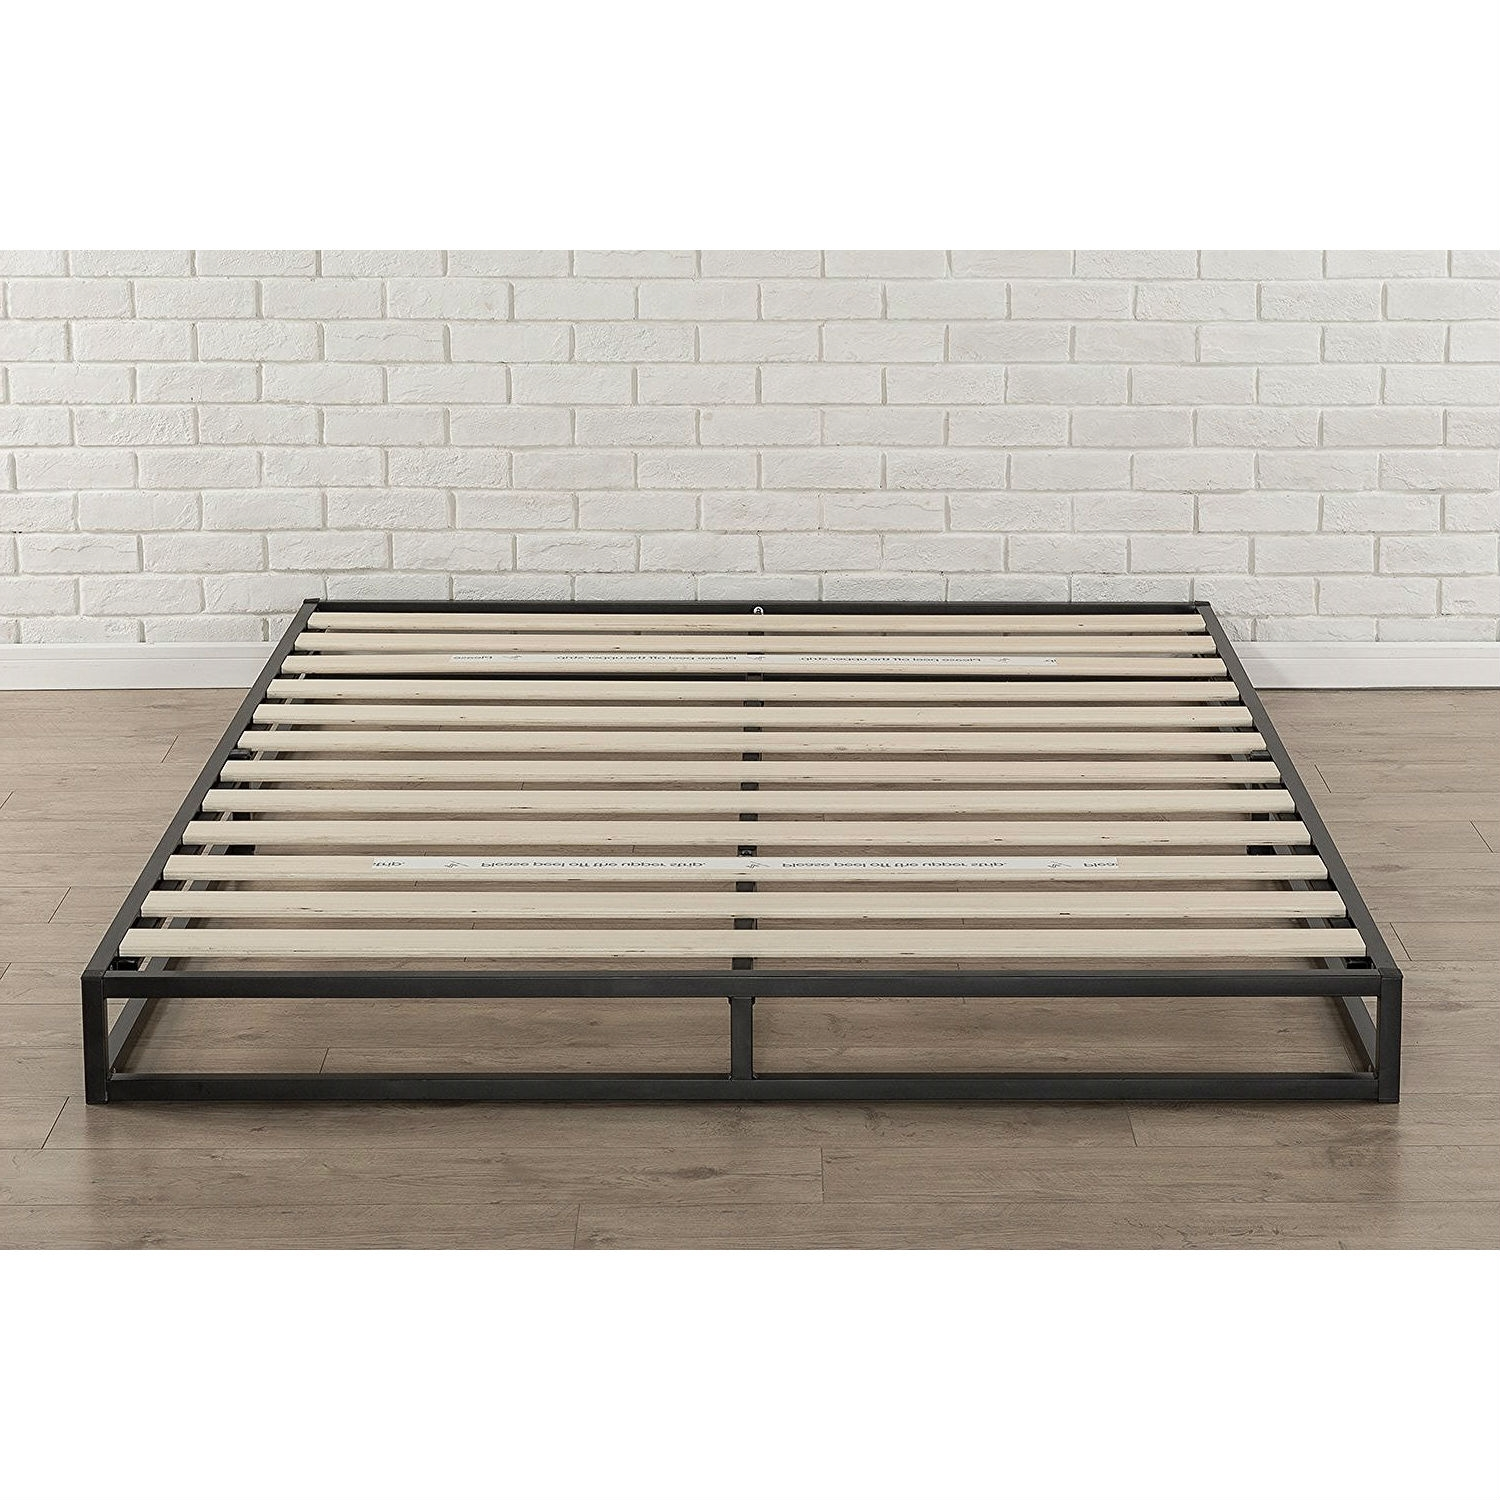 queen size 6 inch low profile metal platform bed frame with wooden slats